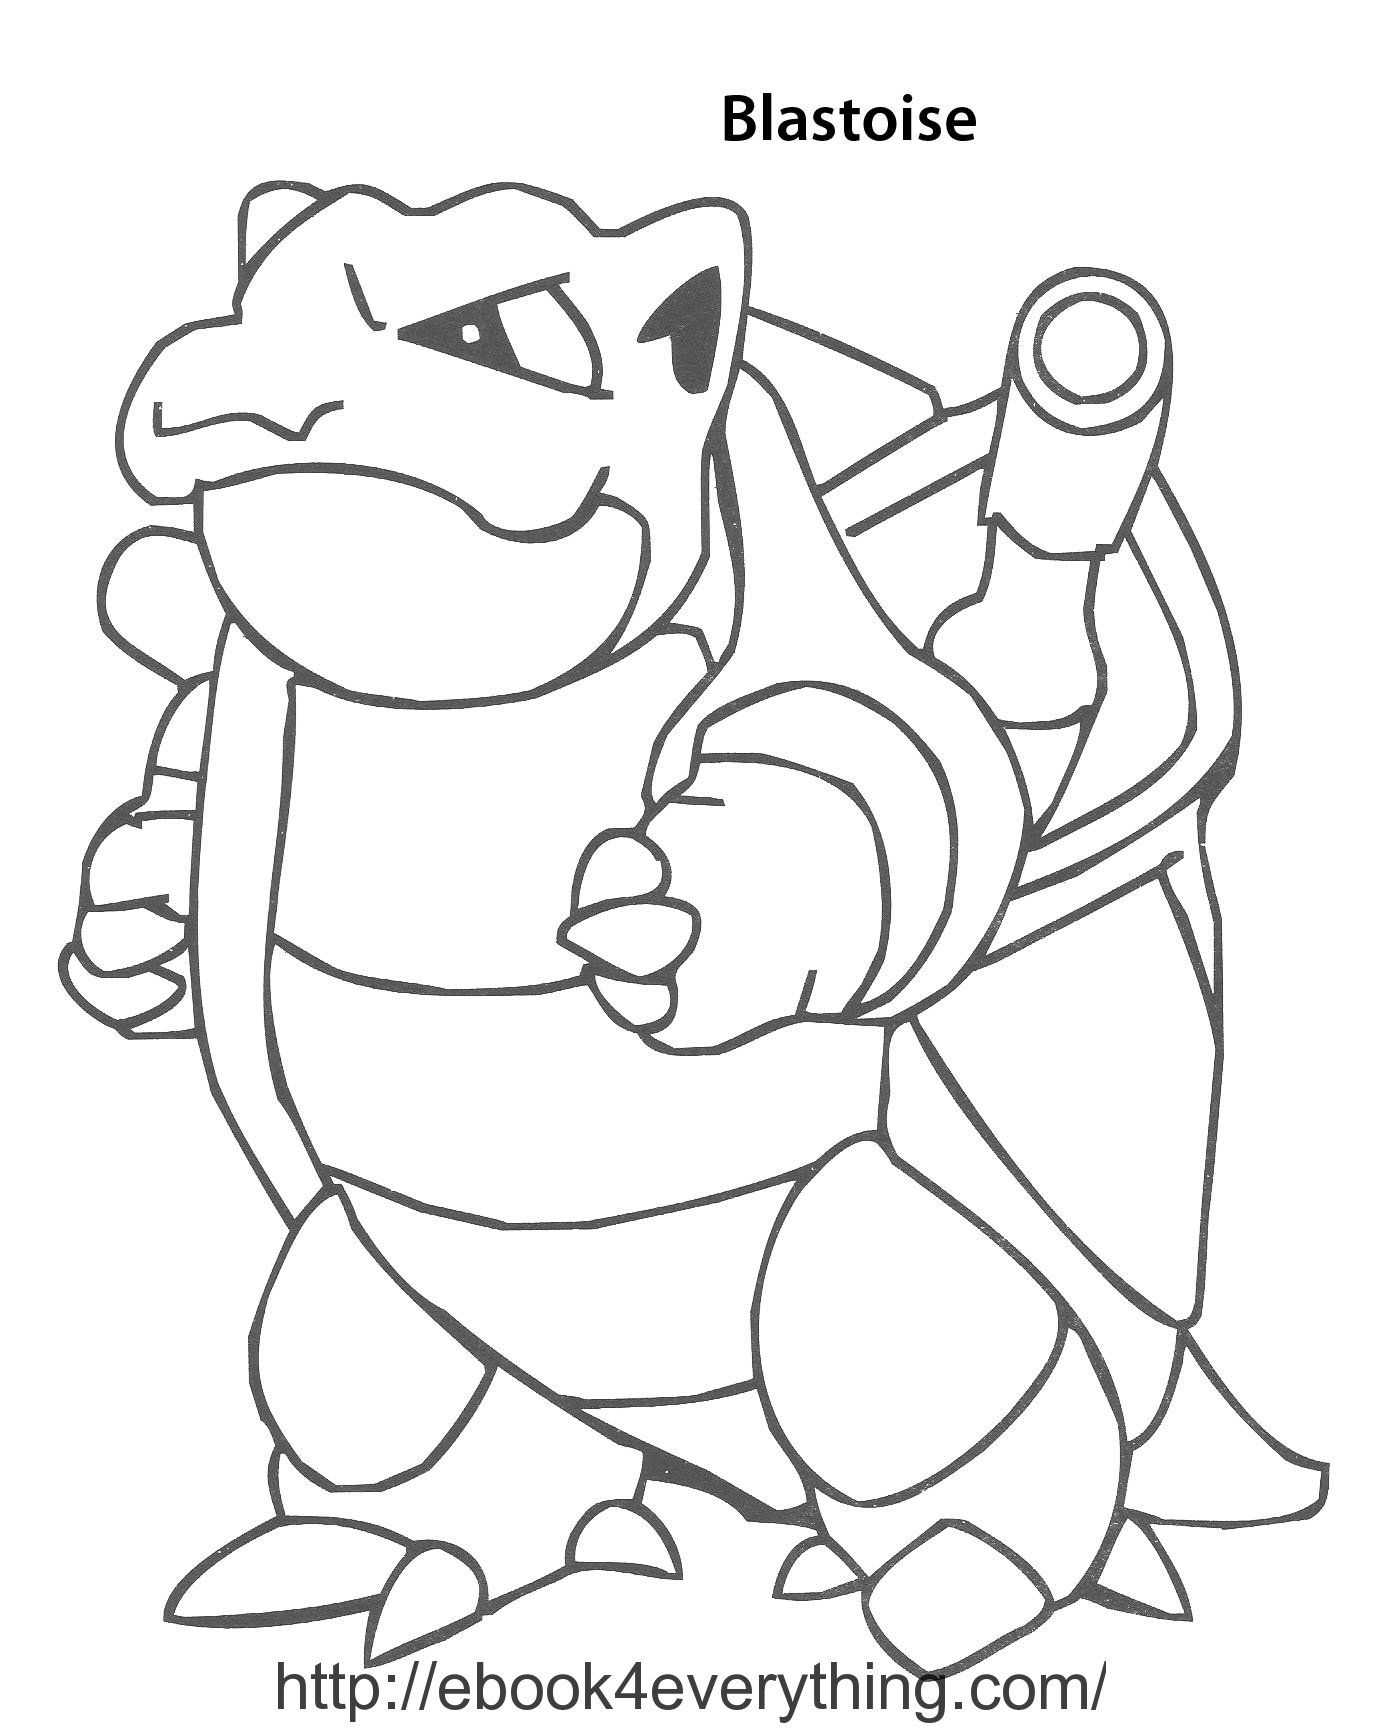 20 Blastoise Coloring Page Images Free Coloring Pages Part 2